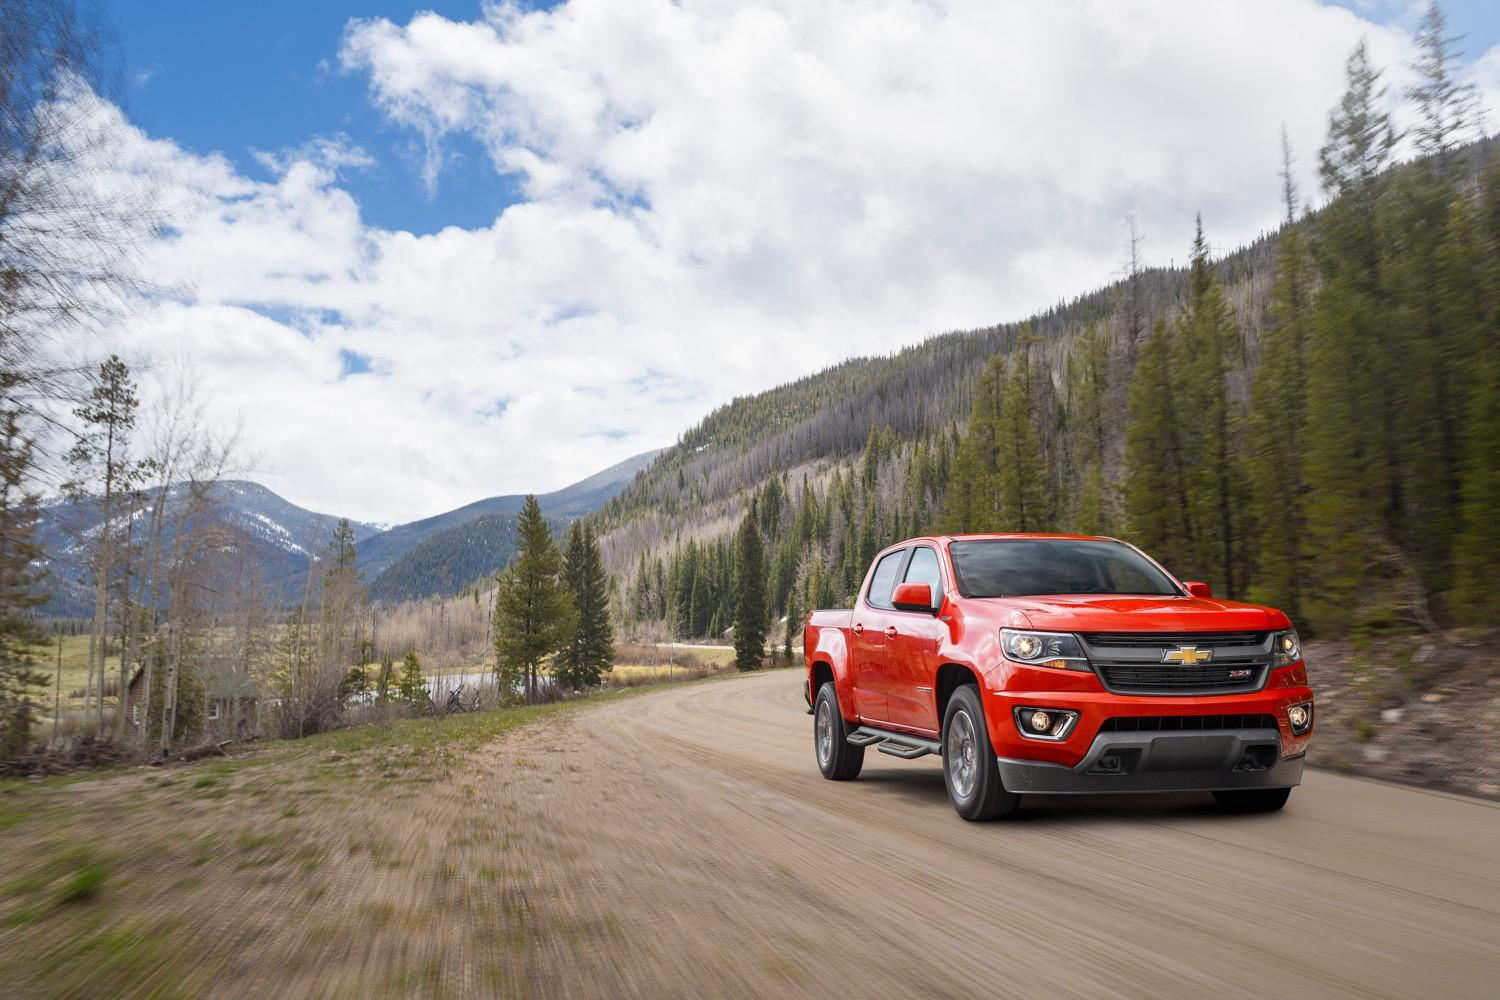 Chevrolet Colorado: What Tacoma, Ridgeline Don't Have